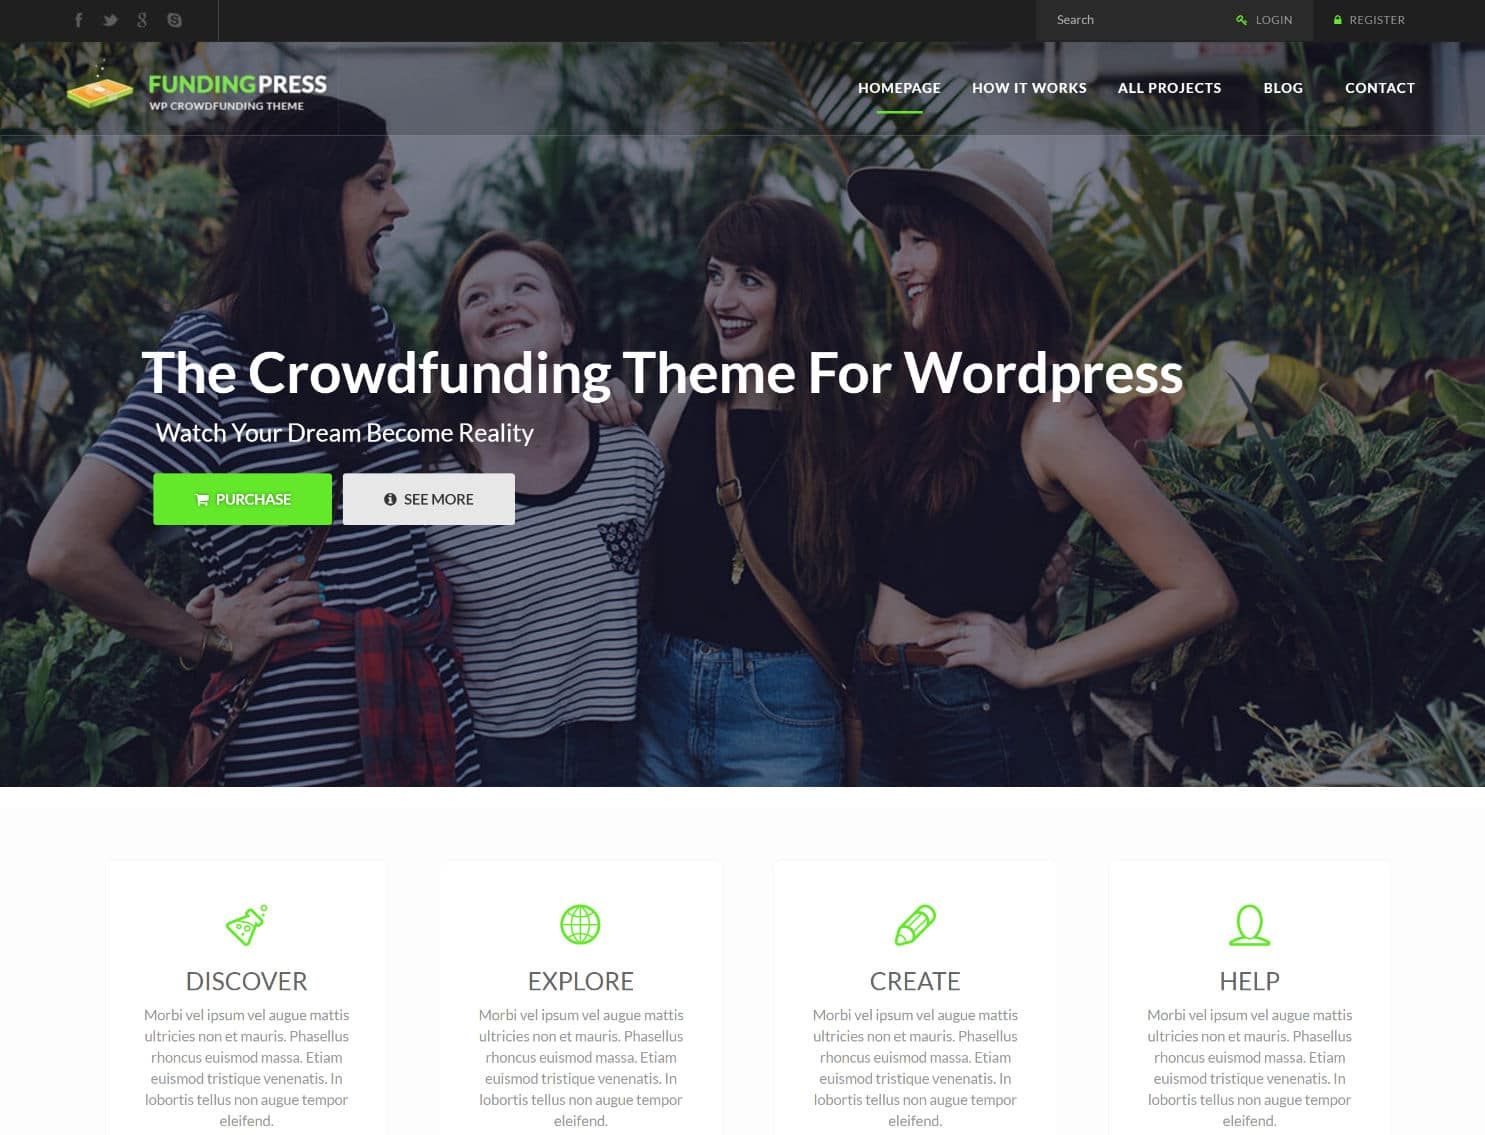 tema fundingpress wordpress